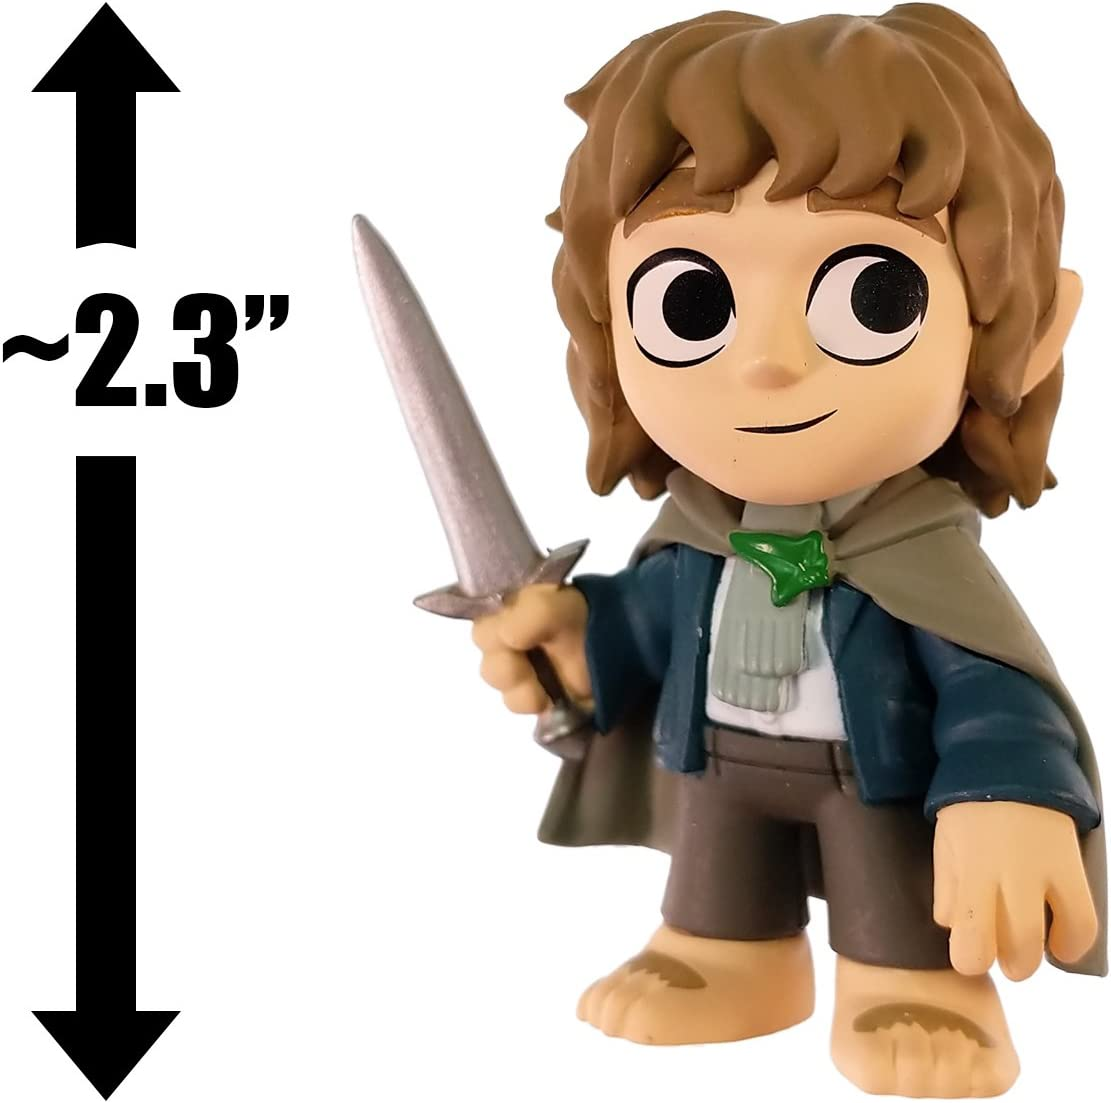 Funko Mystery Minis Lord of the Rings Frodo Baggins /& Samwise Gamgee Set of TWO